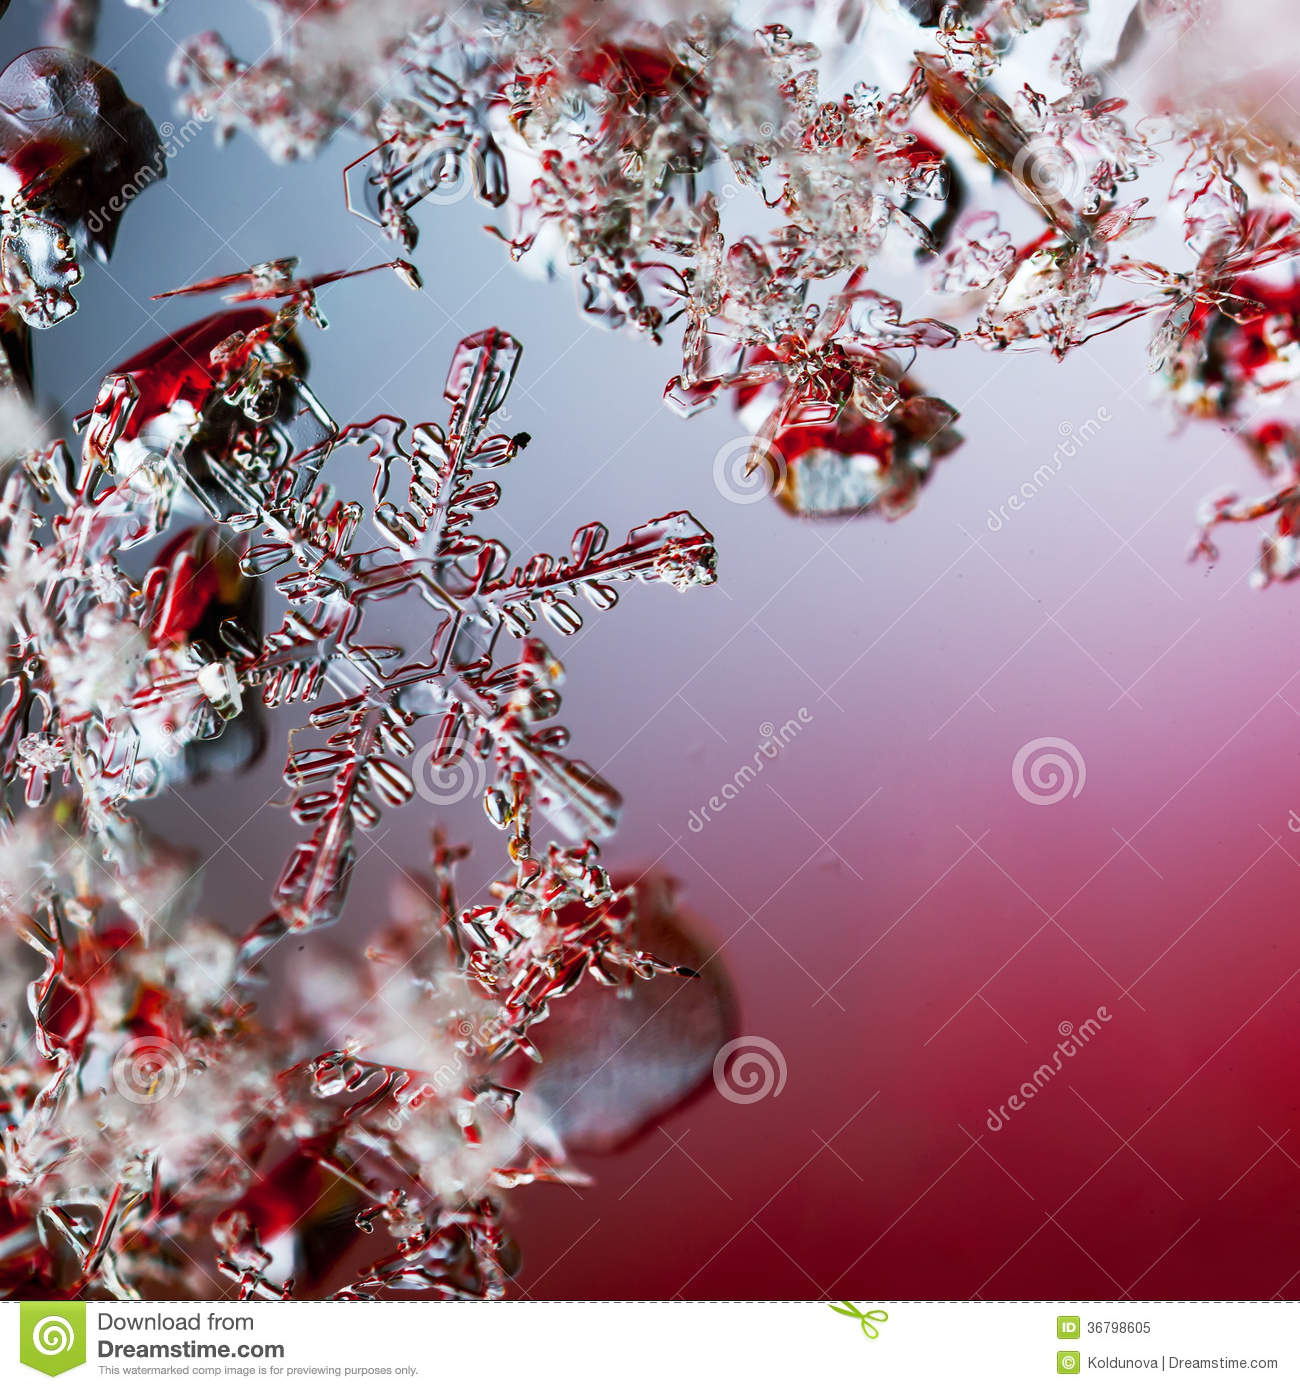 Snowflakes on glass, close-up, blue background | HD Wallpapers |Real Snowflakes Background